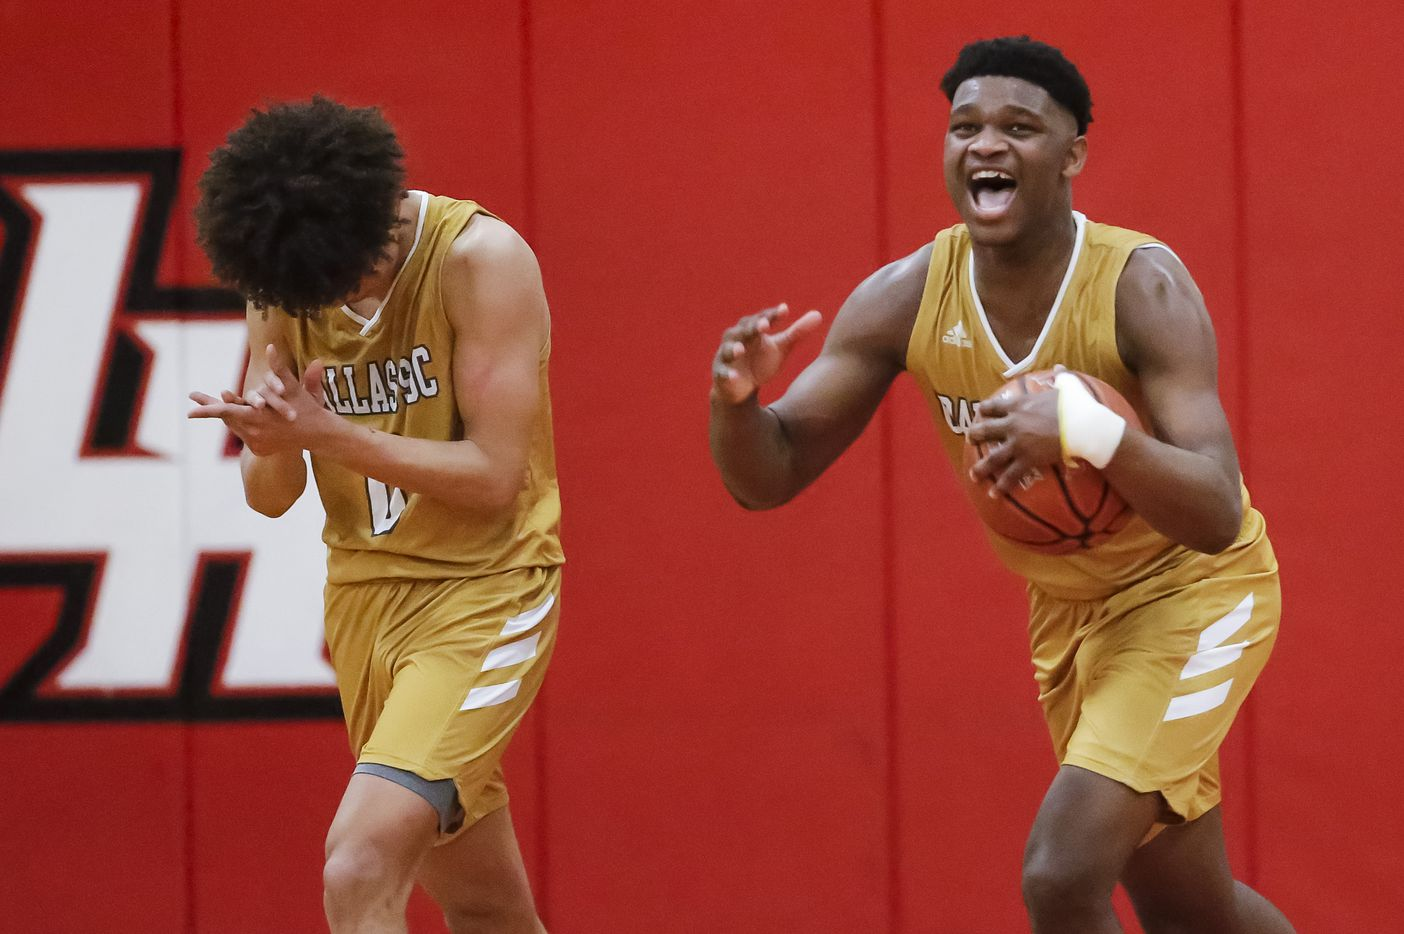 South Oak Cliff senior guard Antoneo Pavia (0) and senior forward Antonio Patterson, right, celebrate a 46-44 win over Lovejoy after a Class 5A area-round playoff basketball game at Lake Highlands High School in Dallas, Wednesday, February 24, 2021. (Brandon Wade/Special Contributor)